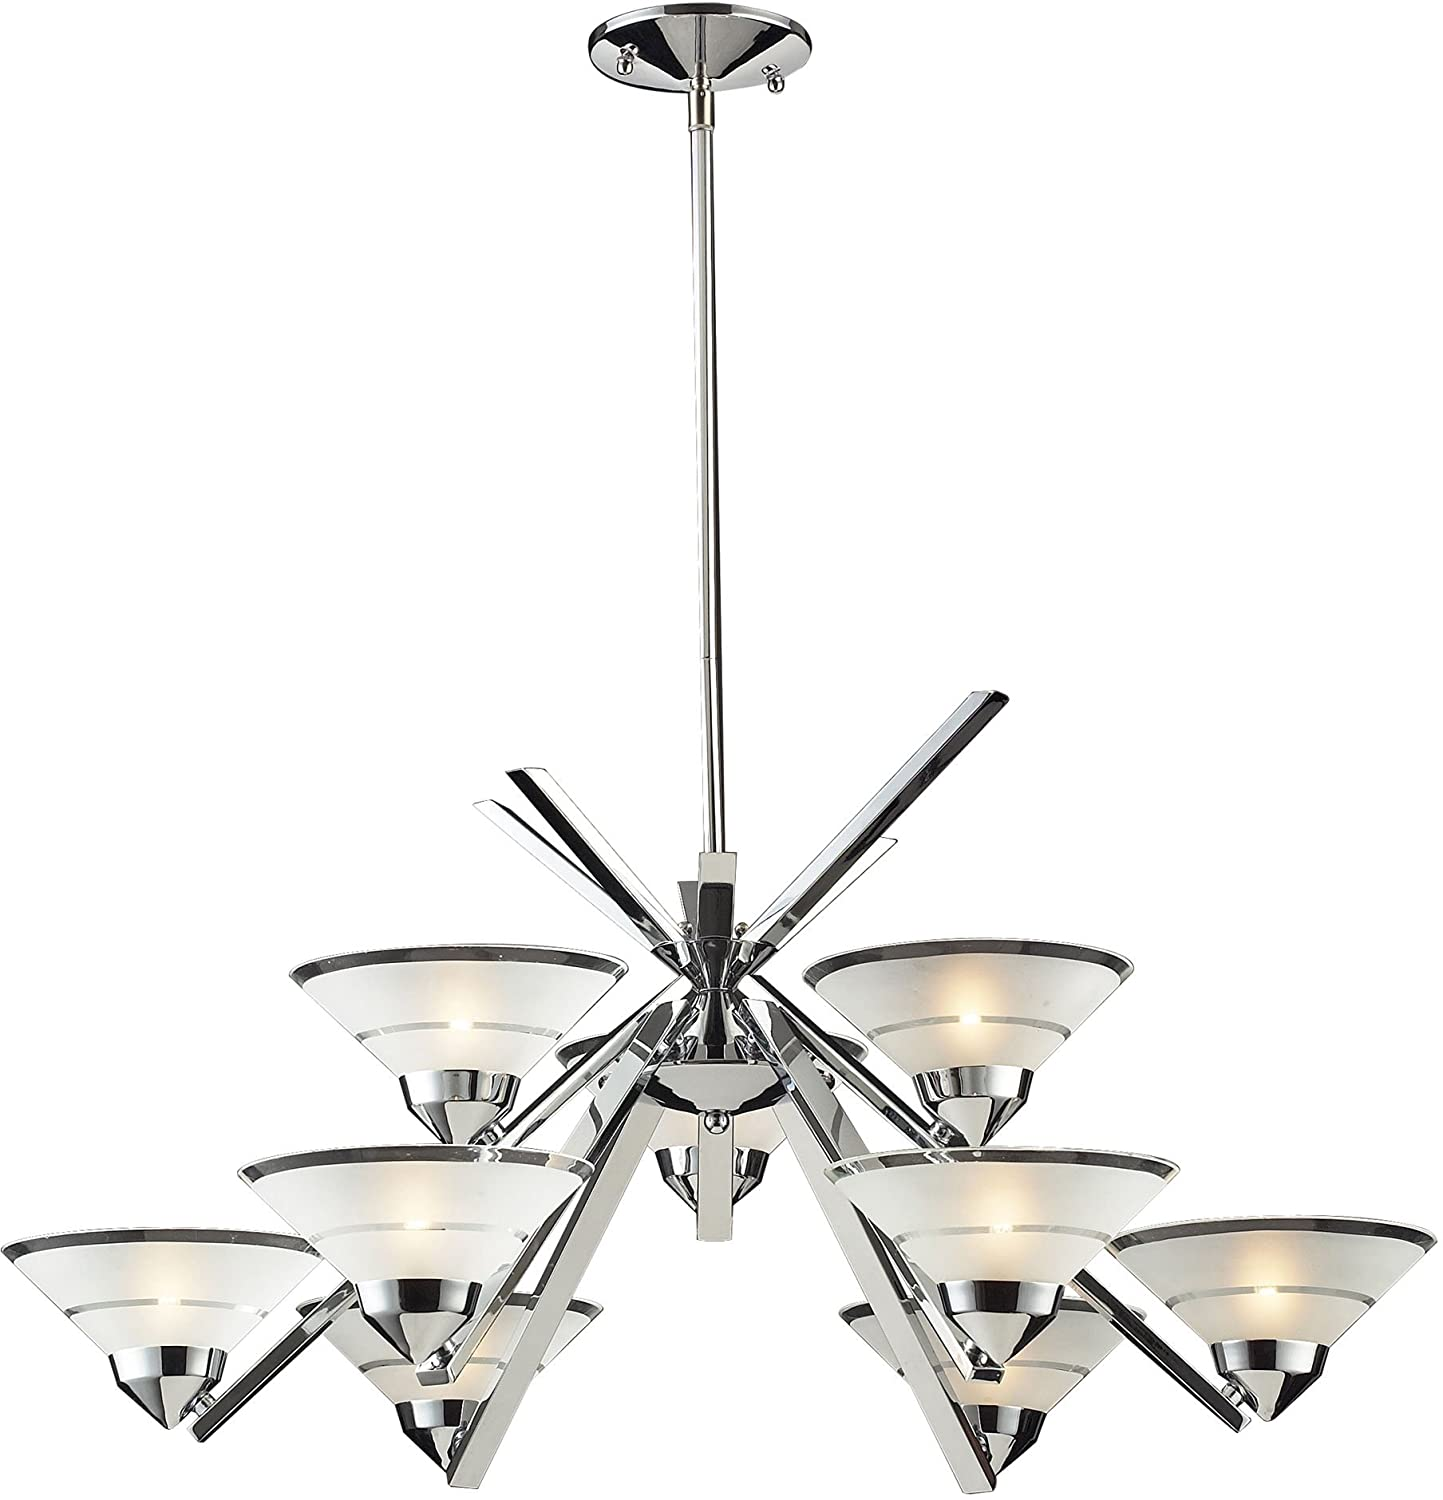 Elk 147663 refraction 9 light chandelier with satin glass shade elk 147663 refraction 9 light chandelier with satin glass shade 31 by 16 inch polished chrome finish light fixtures amazon arubaitofo Images